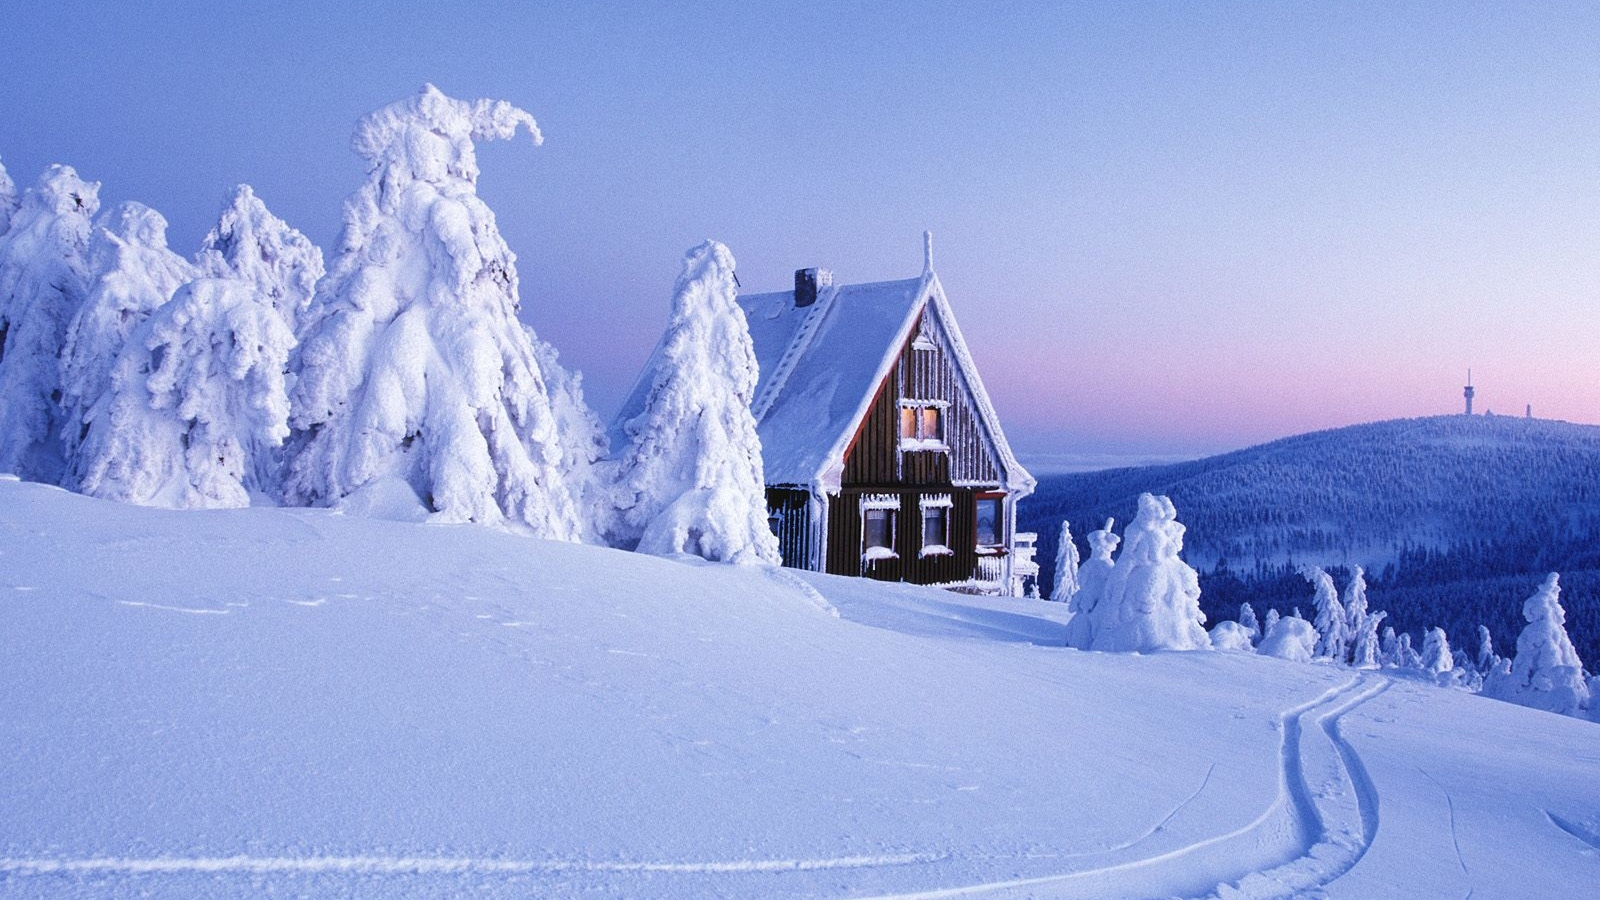 Winter Snow Desktop Wallpaper HD 49780